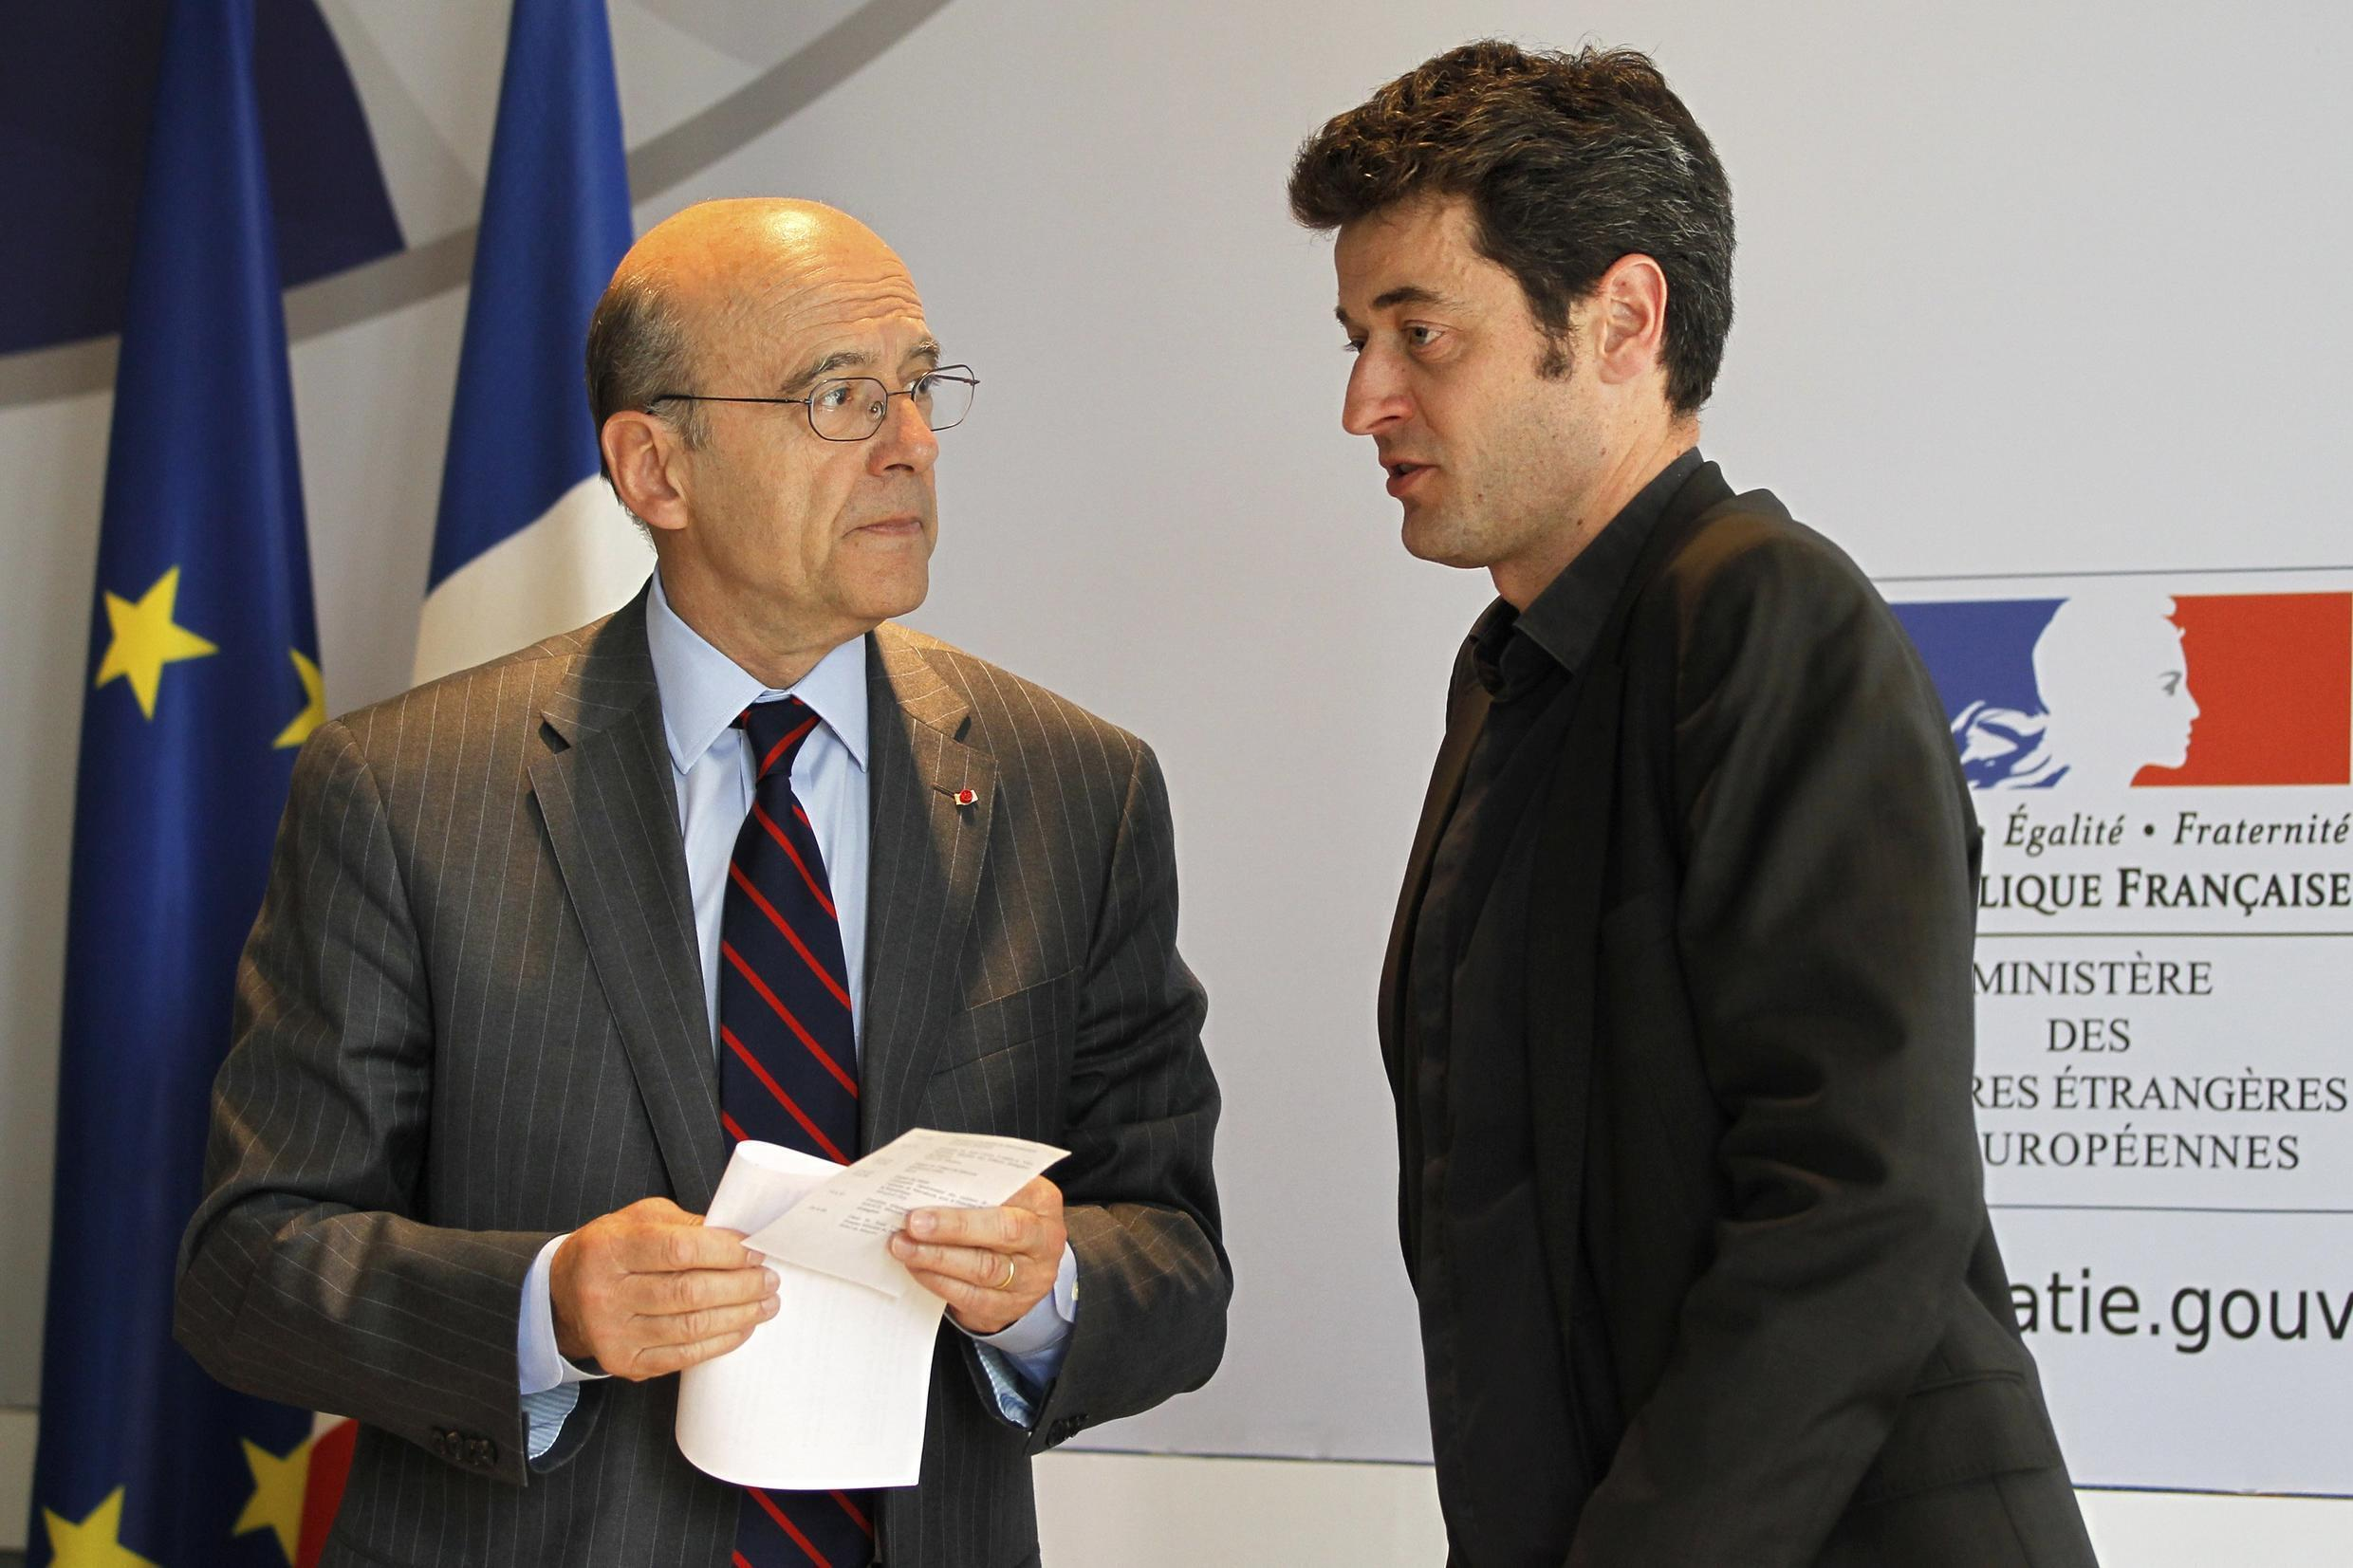 French Foreign Minister Alain Juppé with RSF's Jean-Francois Julliard after a news conference in Paris Tuesday